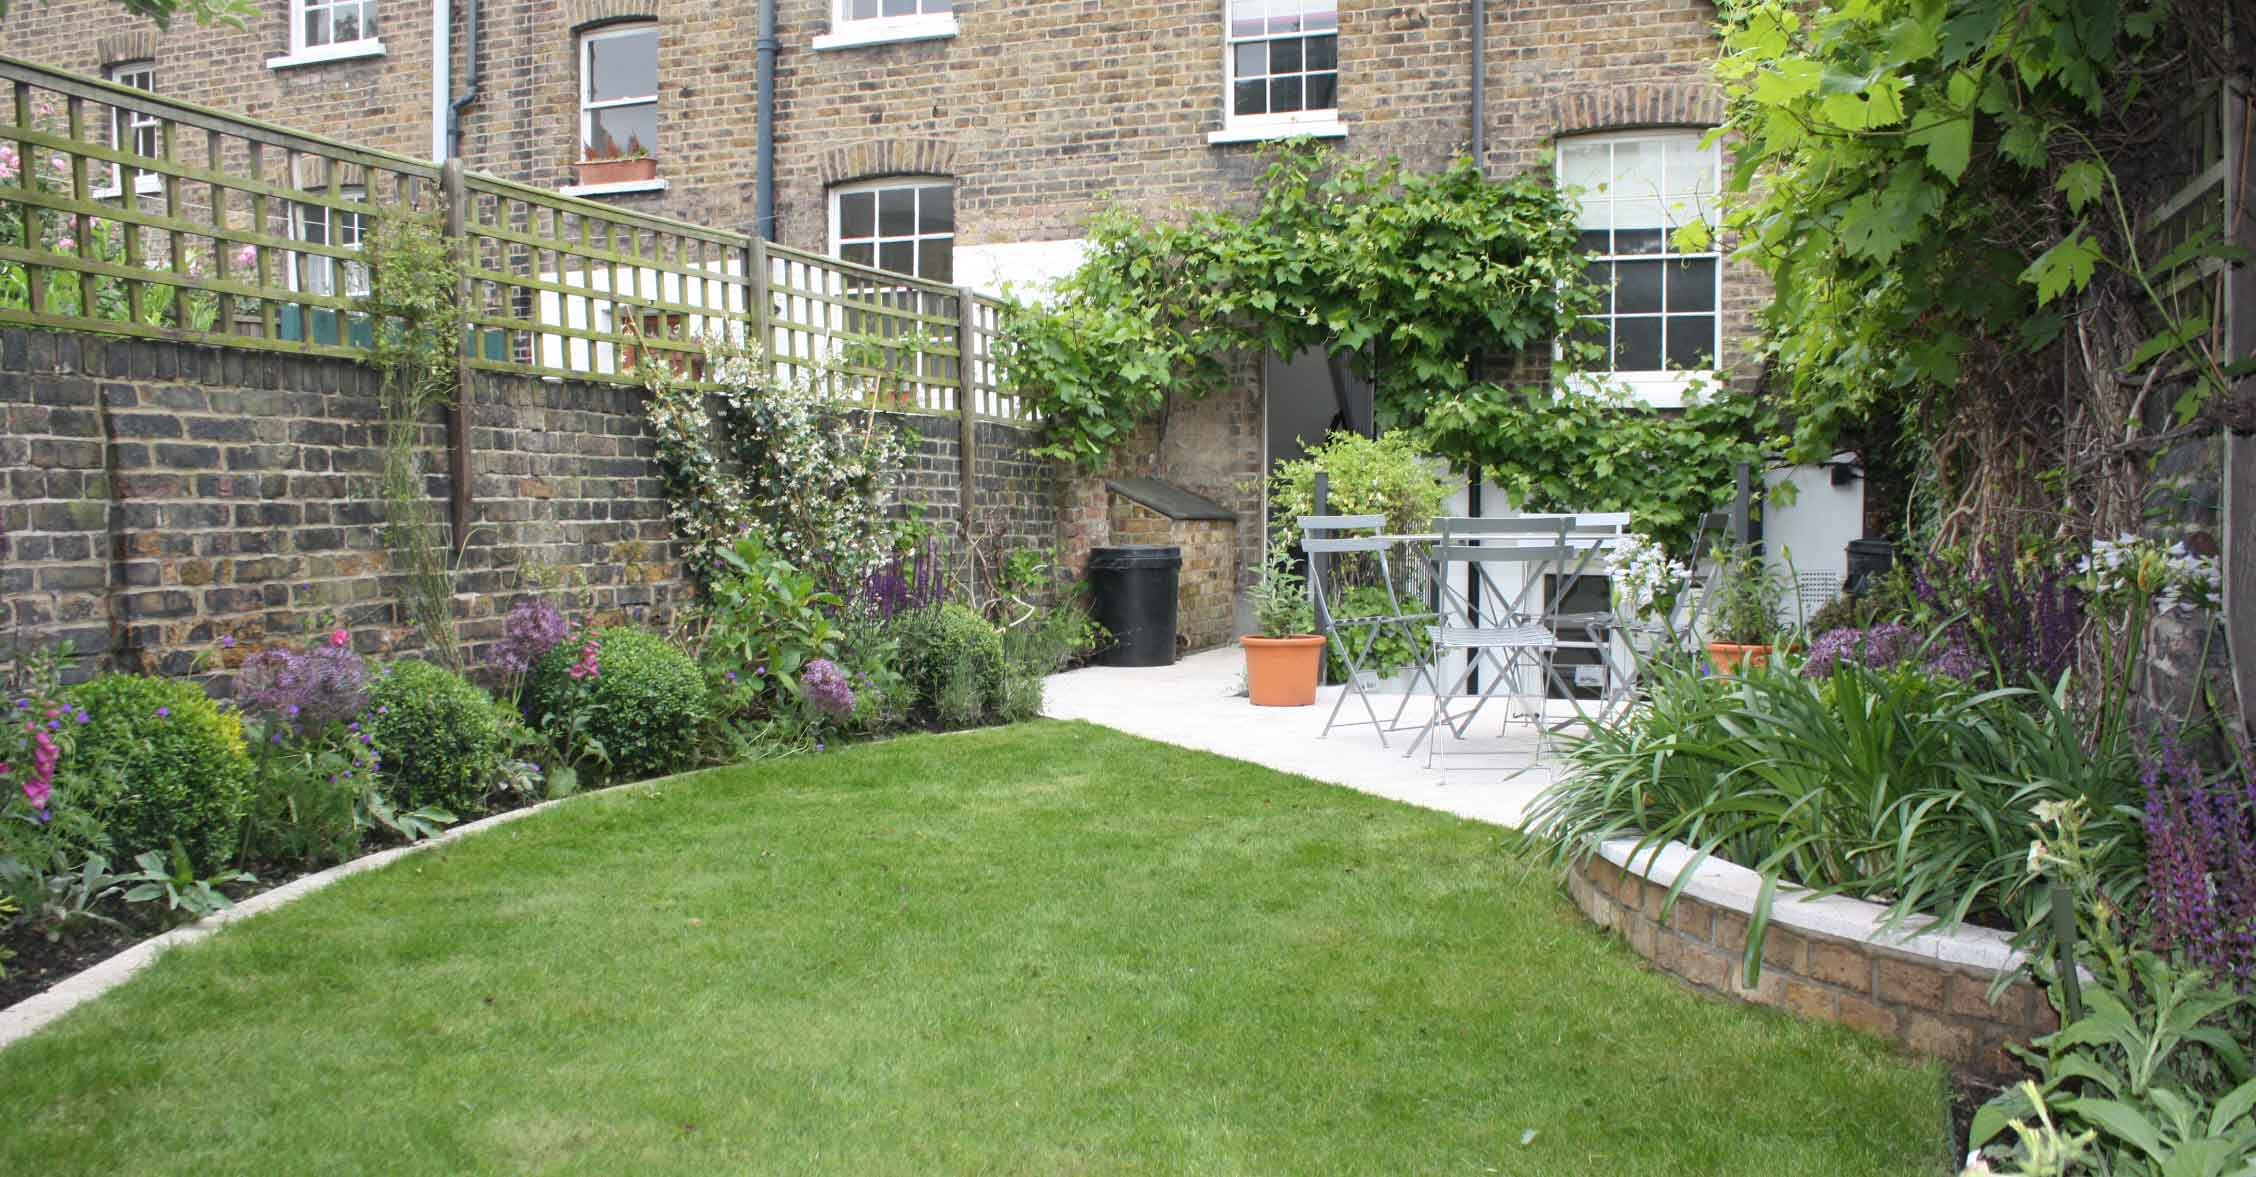 Long thin greenwich cottage garden garden design london for Long thin garden designs